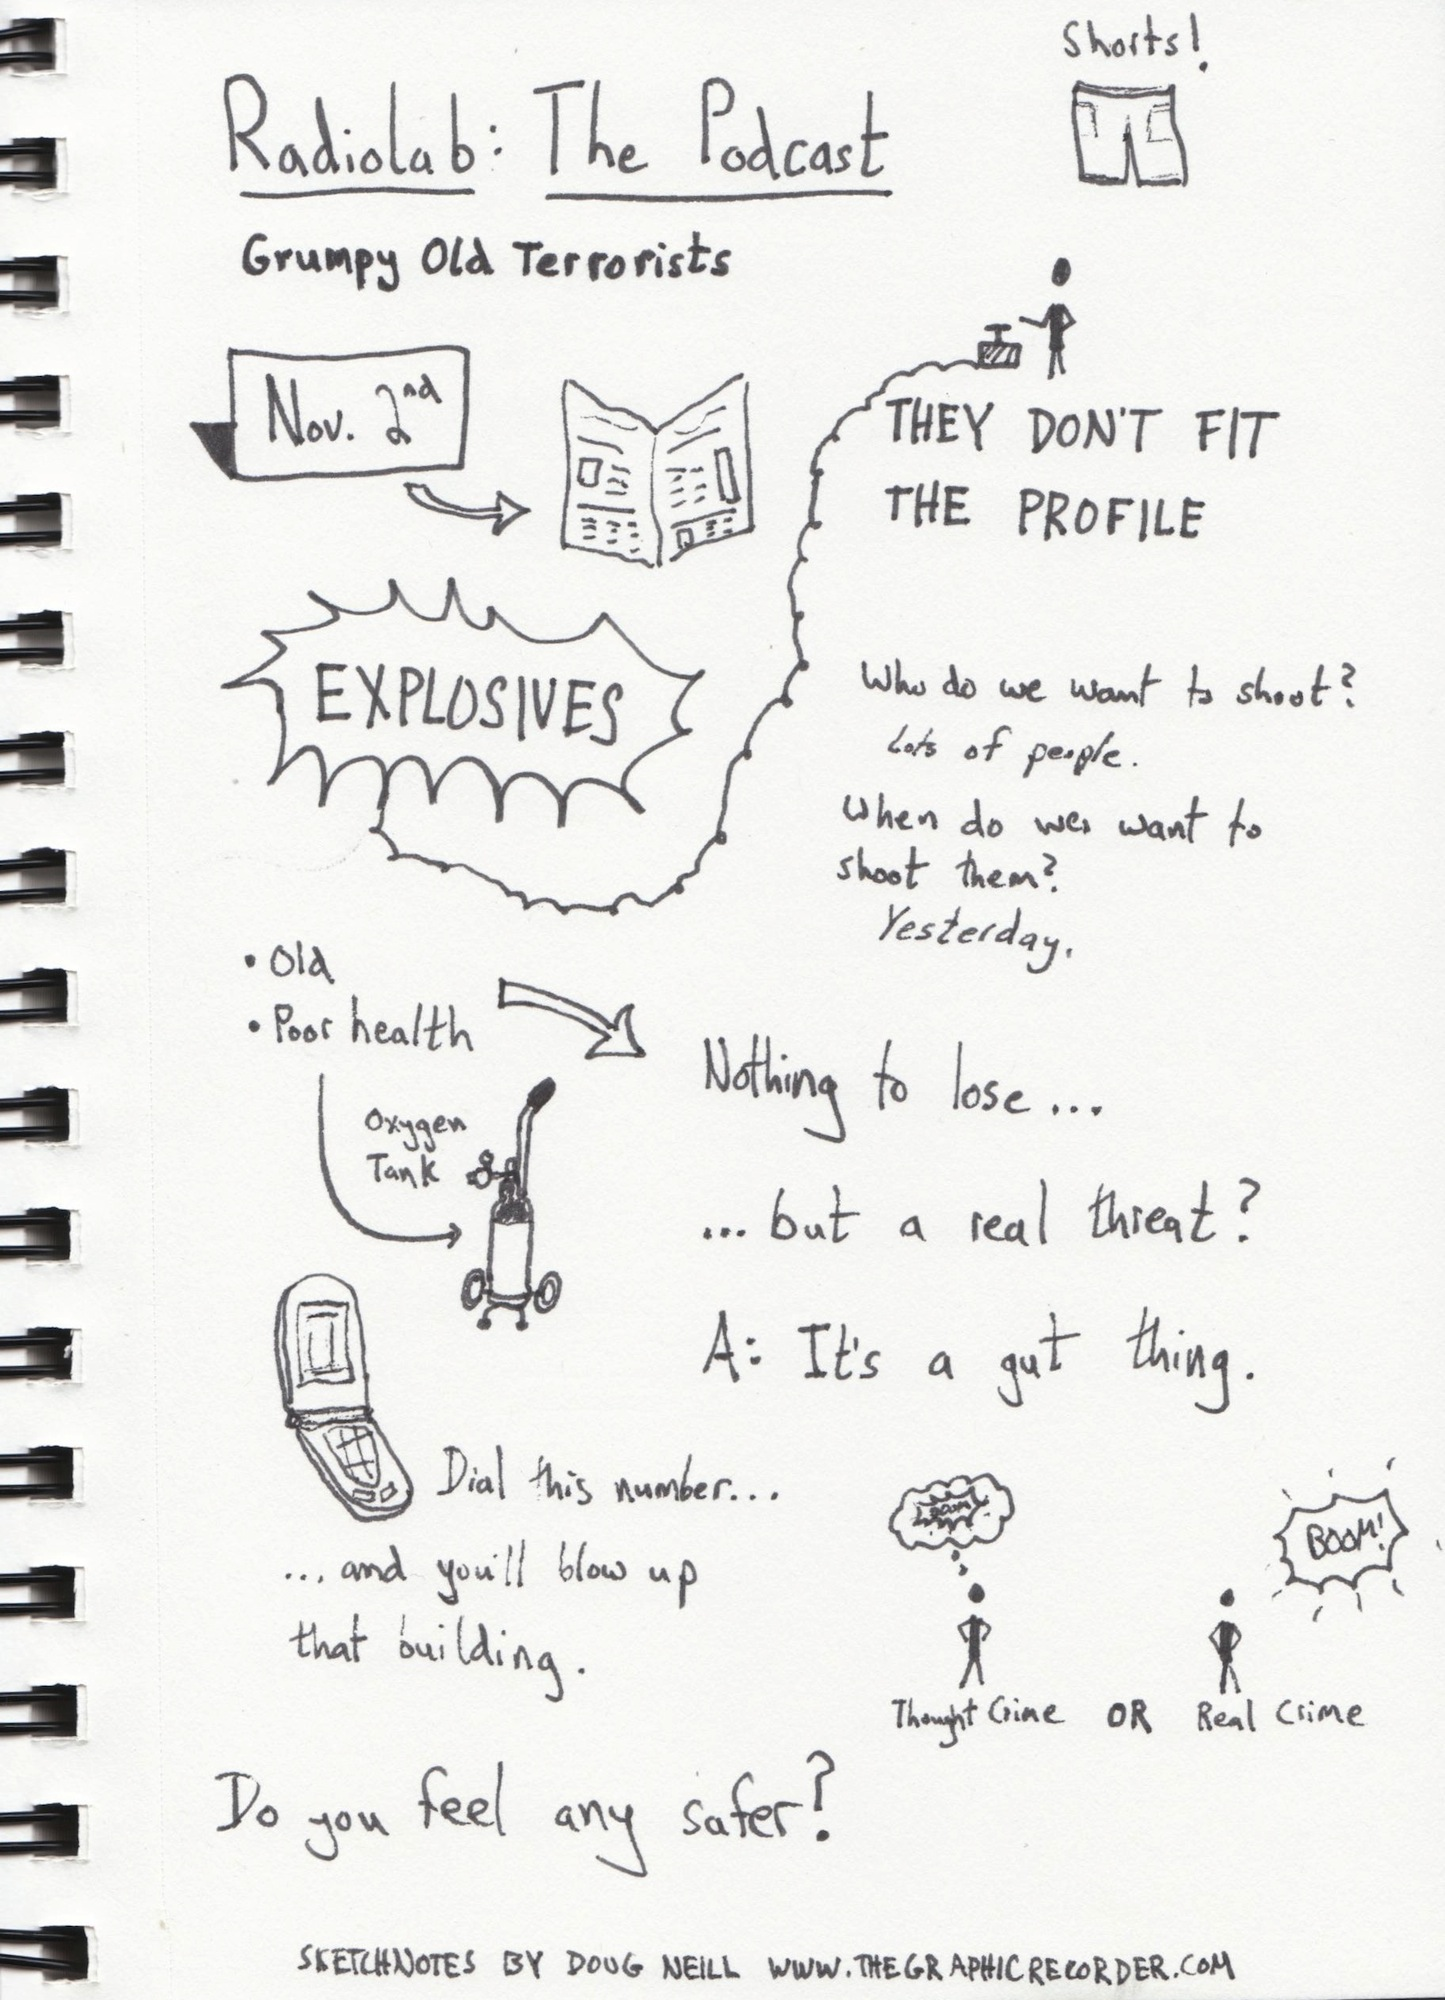 The Graphic Recorder - Doug Neill Sketchnotes - Grumpy Old Terrorists - Radiolab